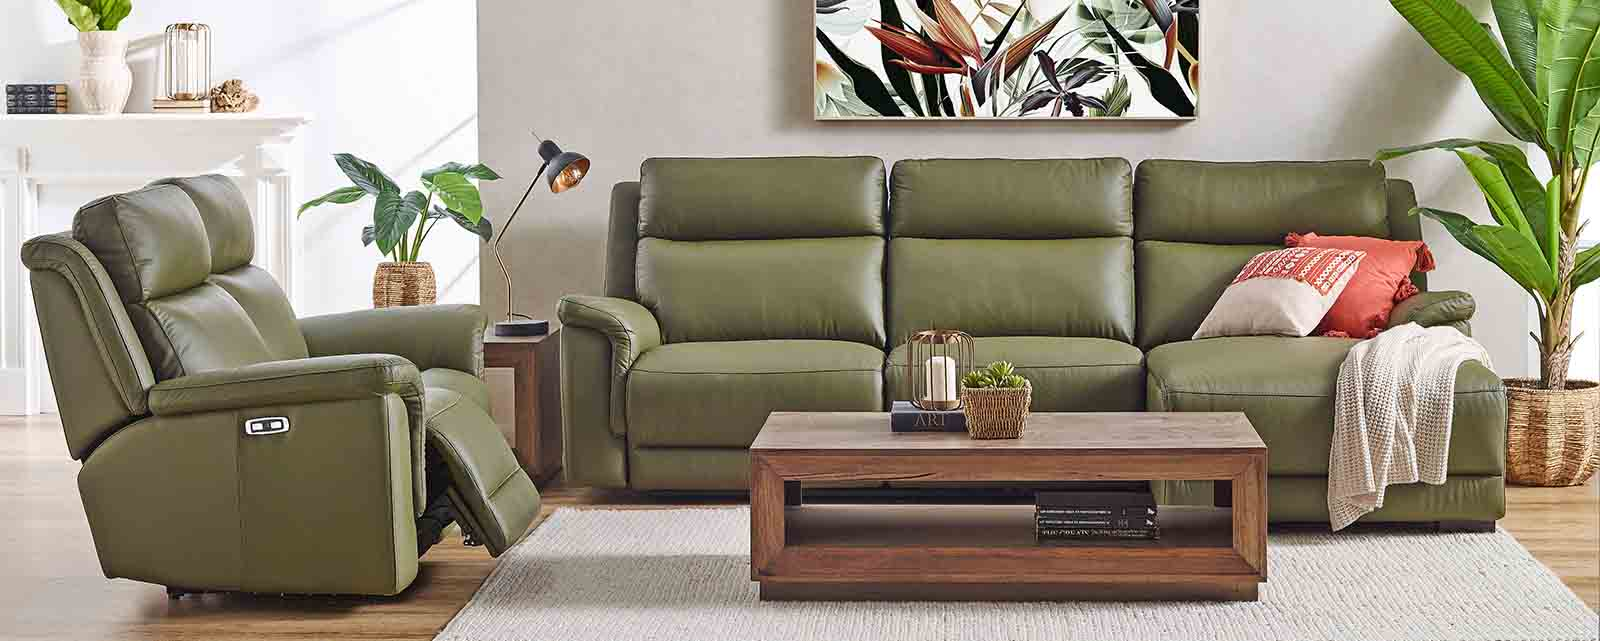 A comfortable reclining leather sofa suite.